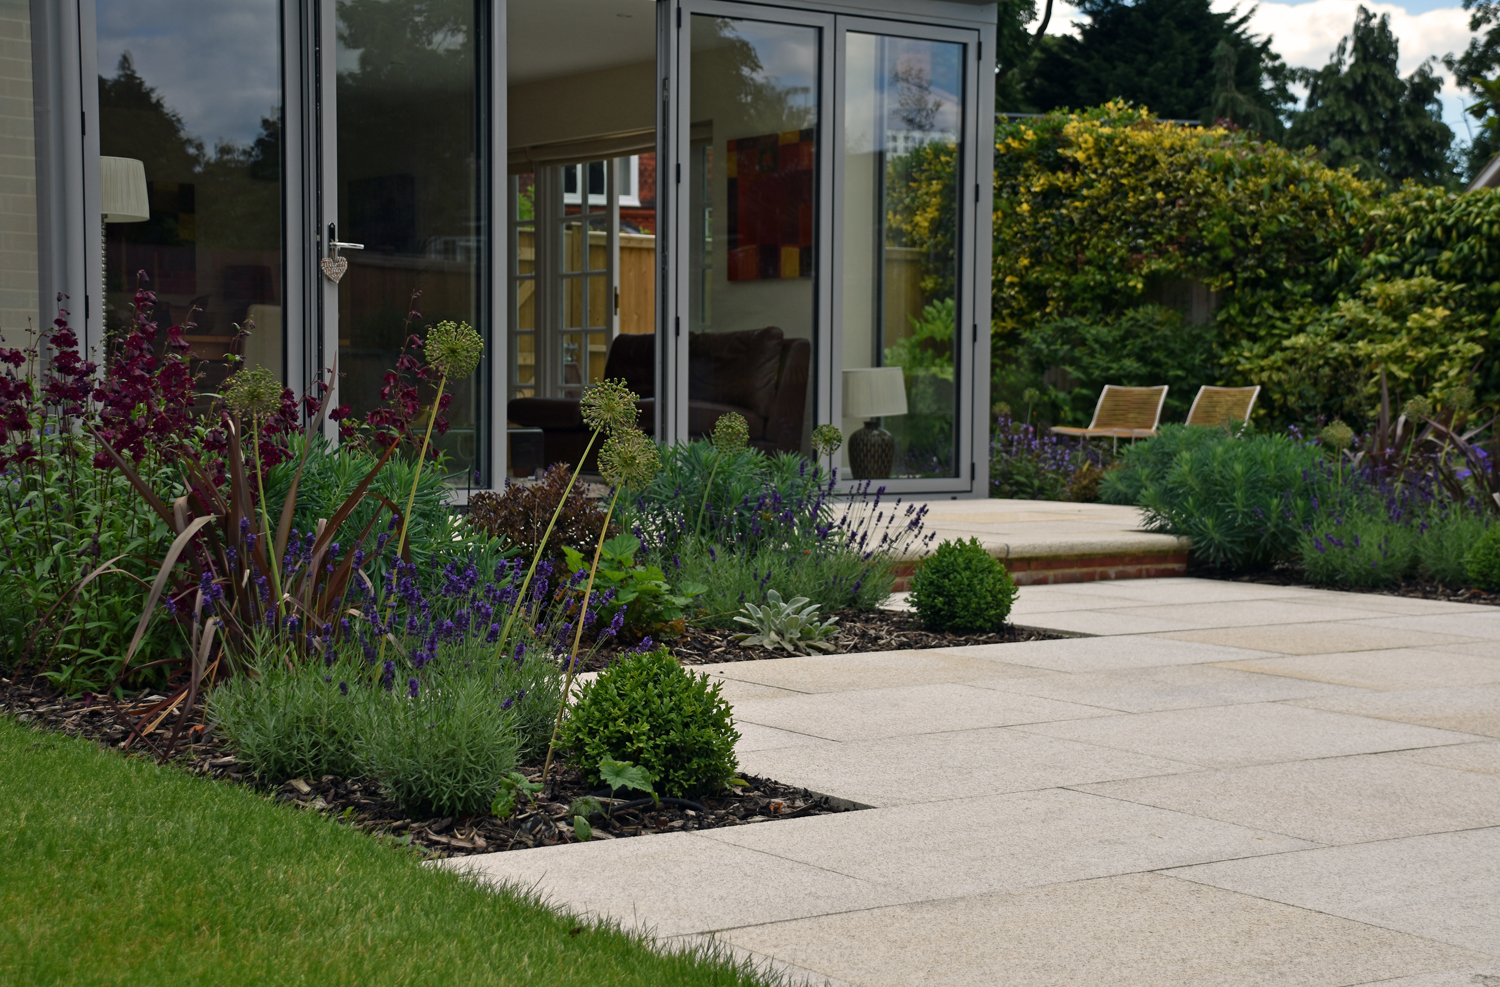 Private garden by Lisa Cox using our Yellow Granite Paving to complete the patio area.